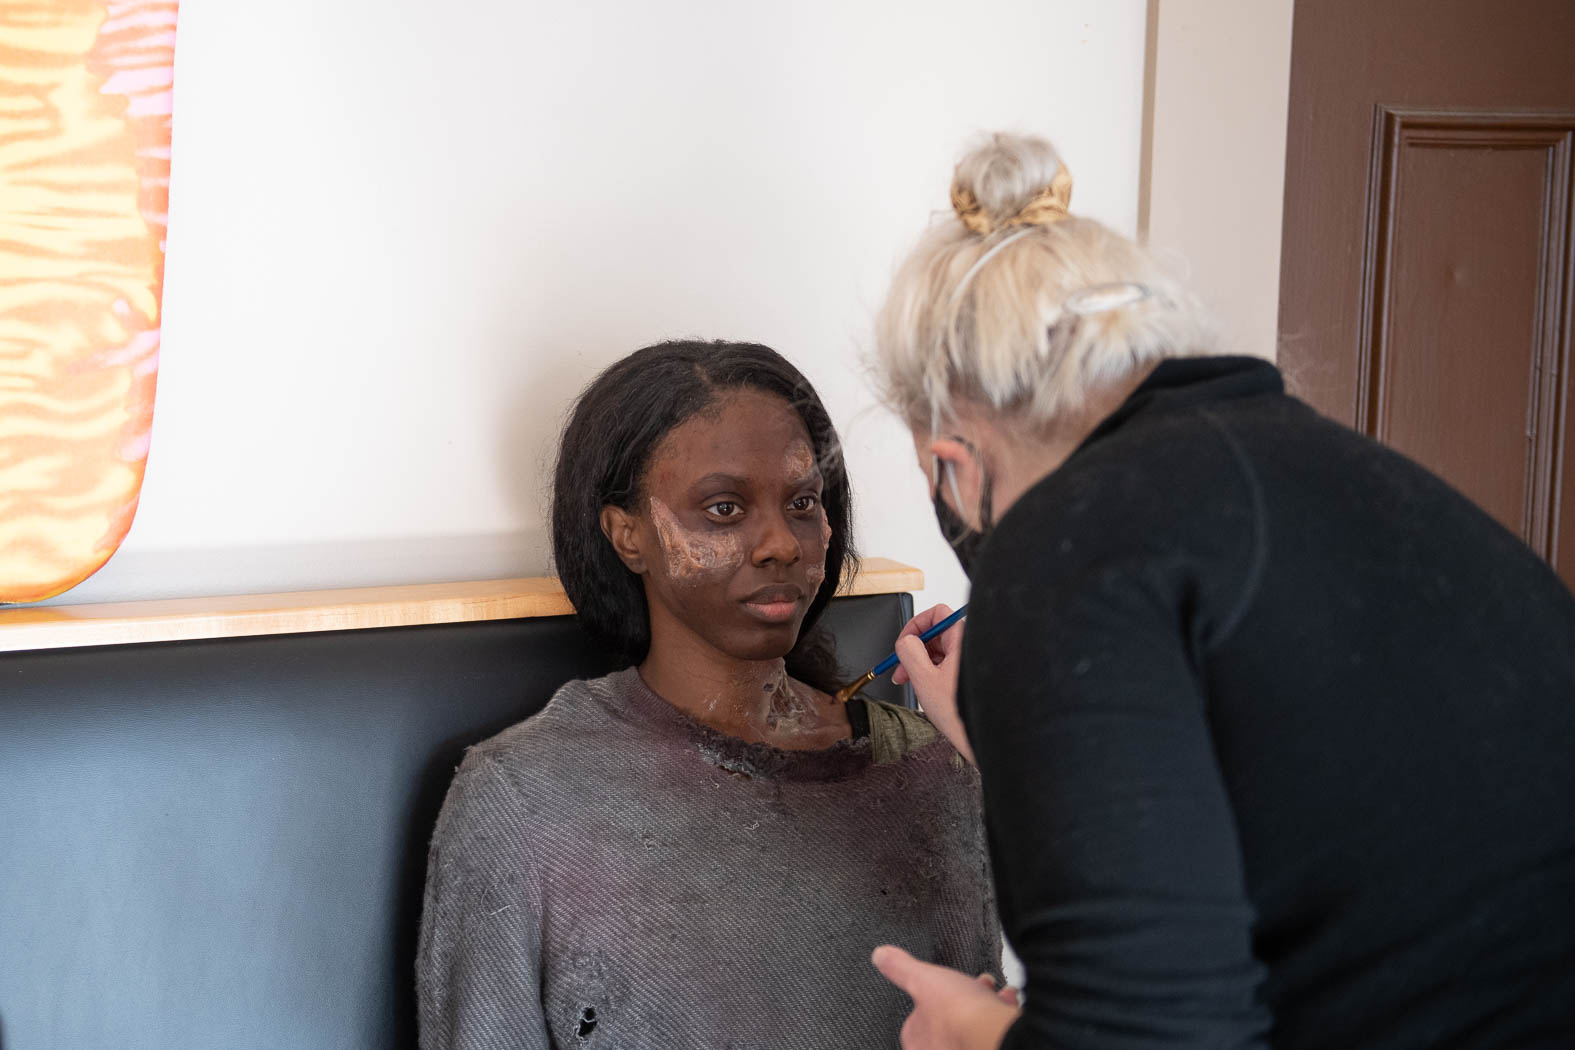 Zombie with Make-Up Artist